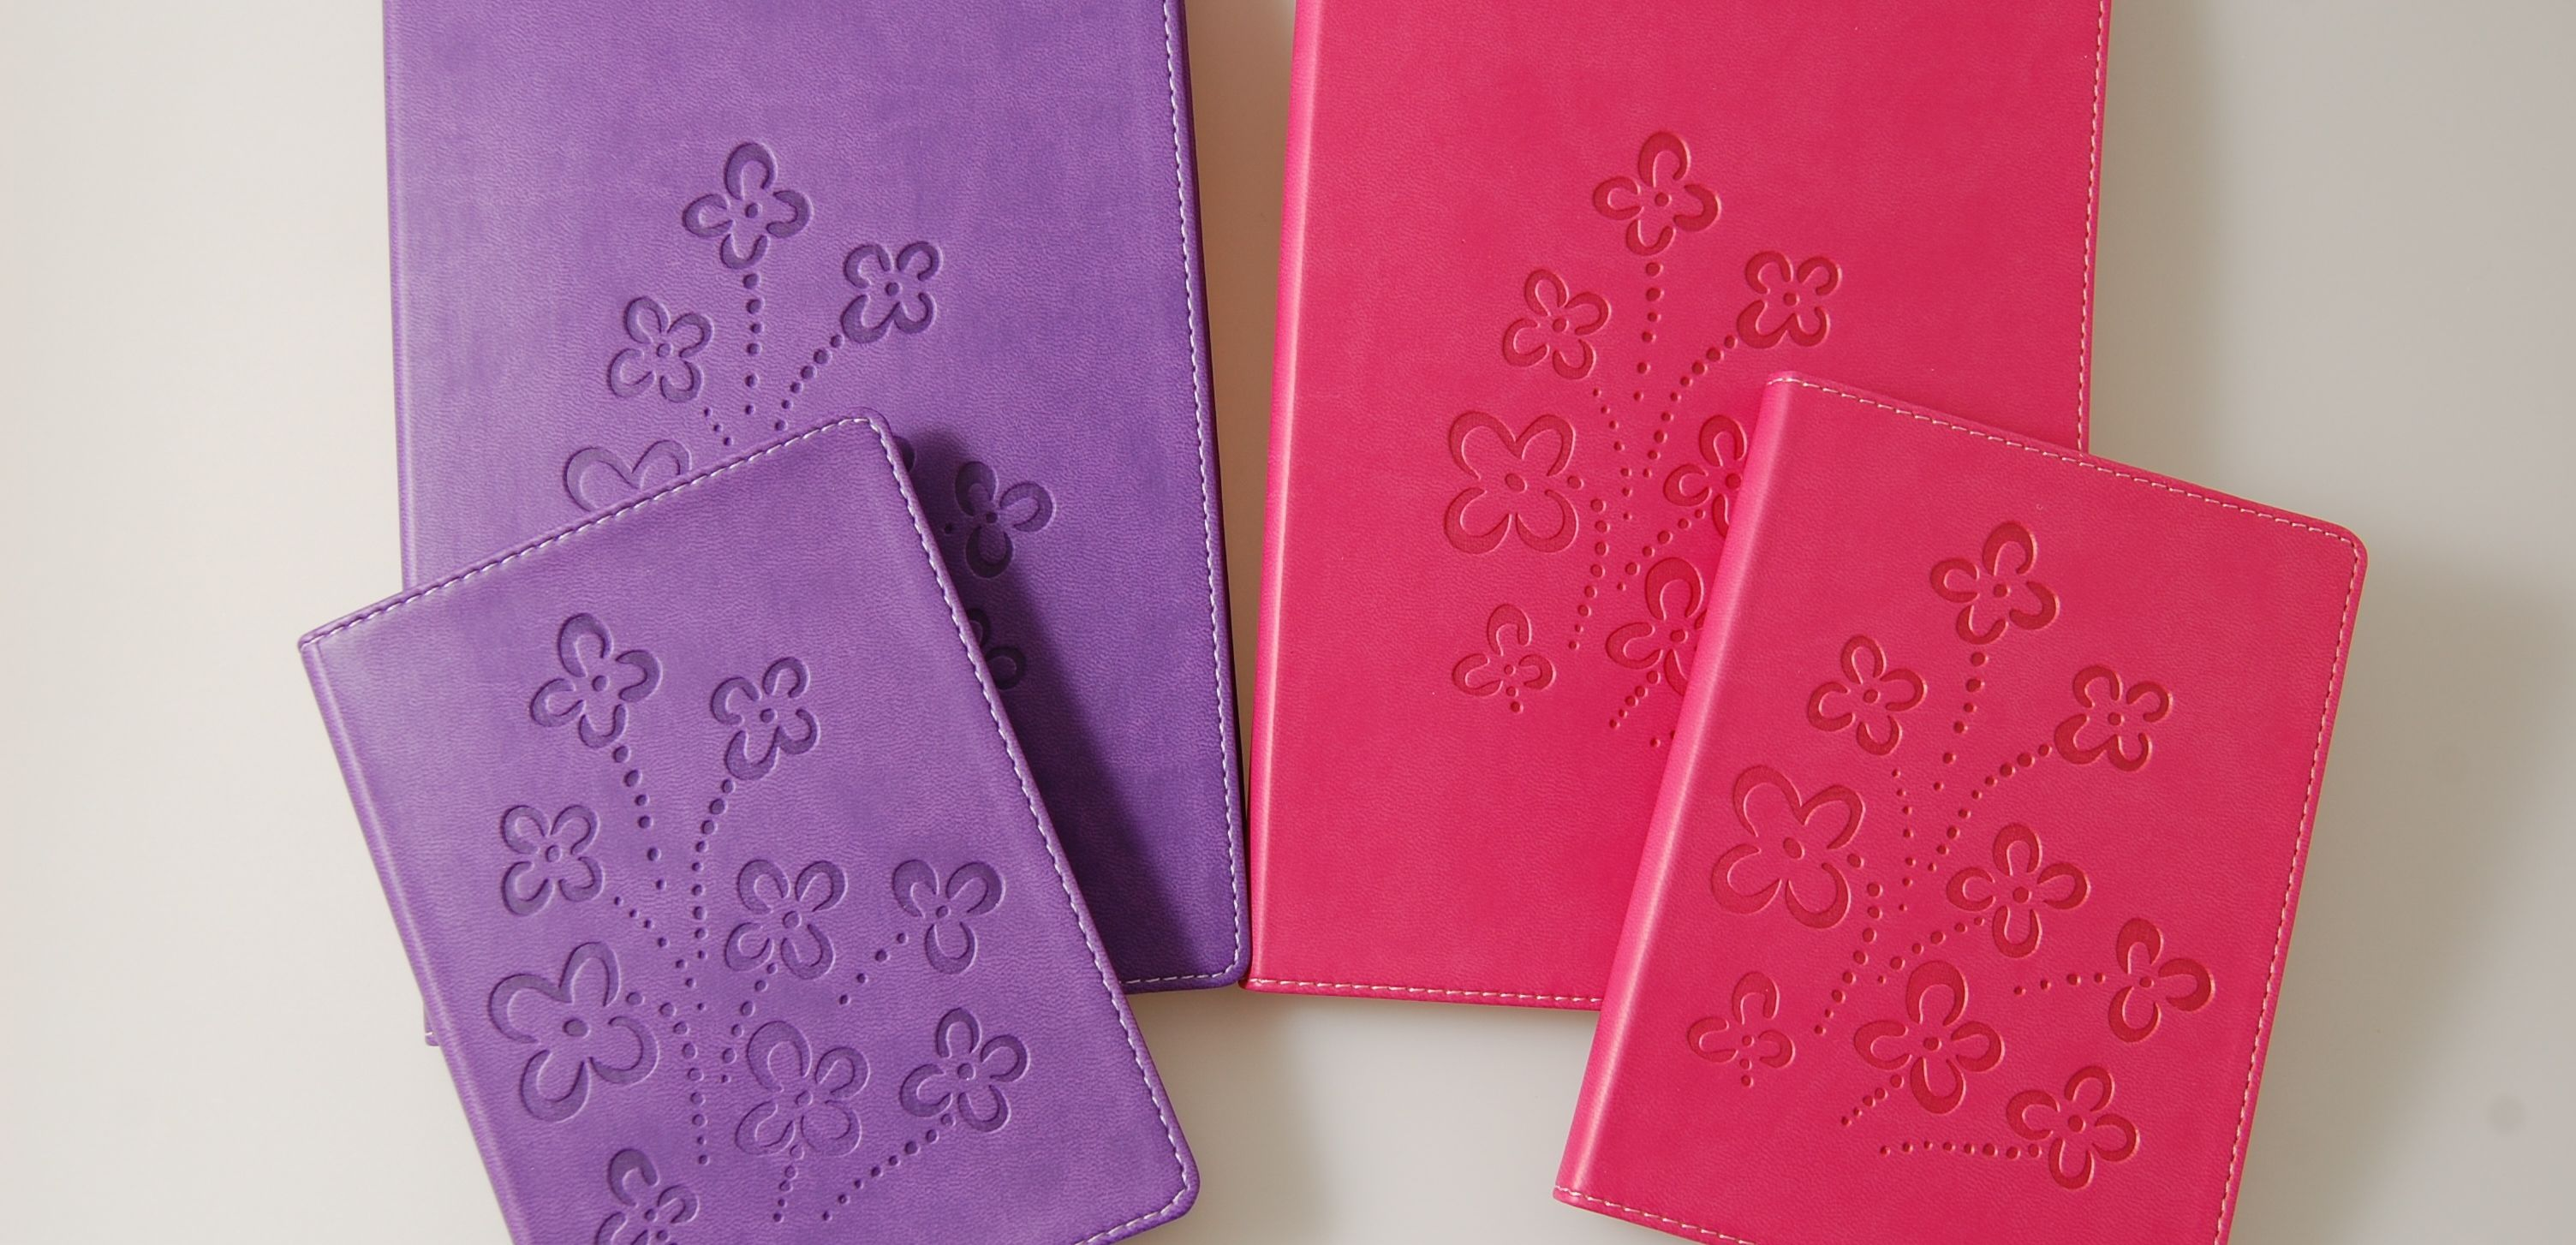 Journals embossed with flowers for Mom